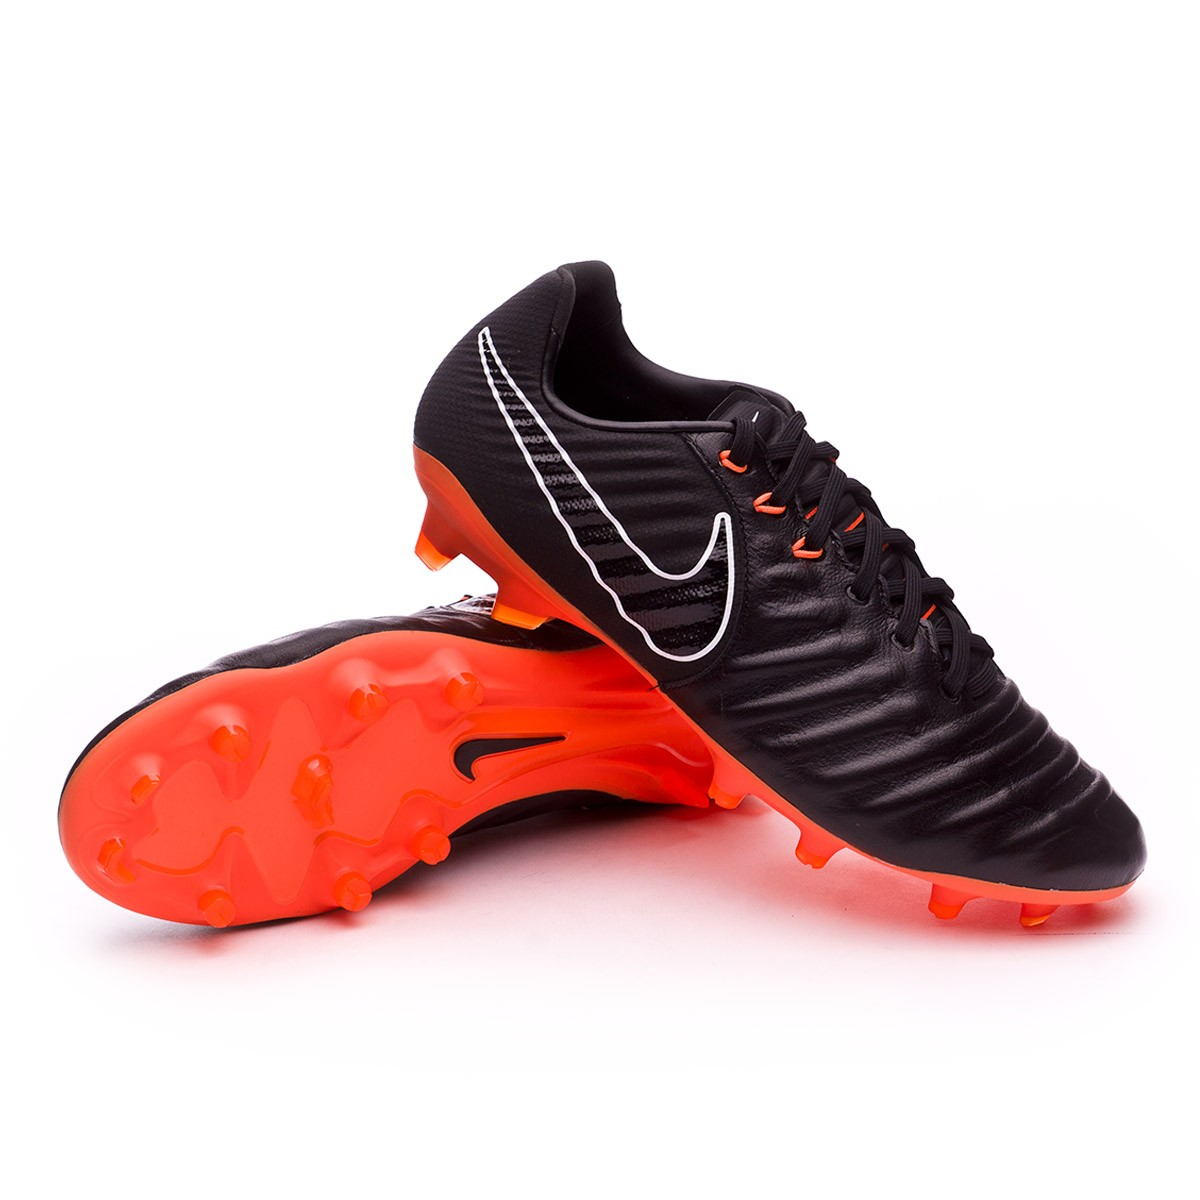 bd014e0ab165 Football Boots Nike Tiempo Legend VII Pro FG Black-Total orange ...